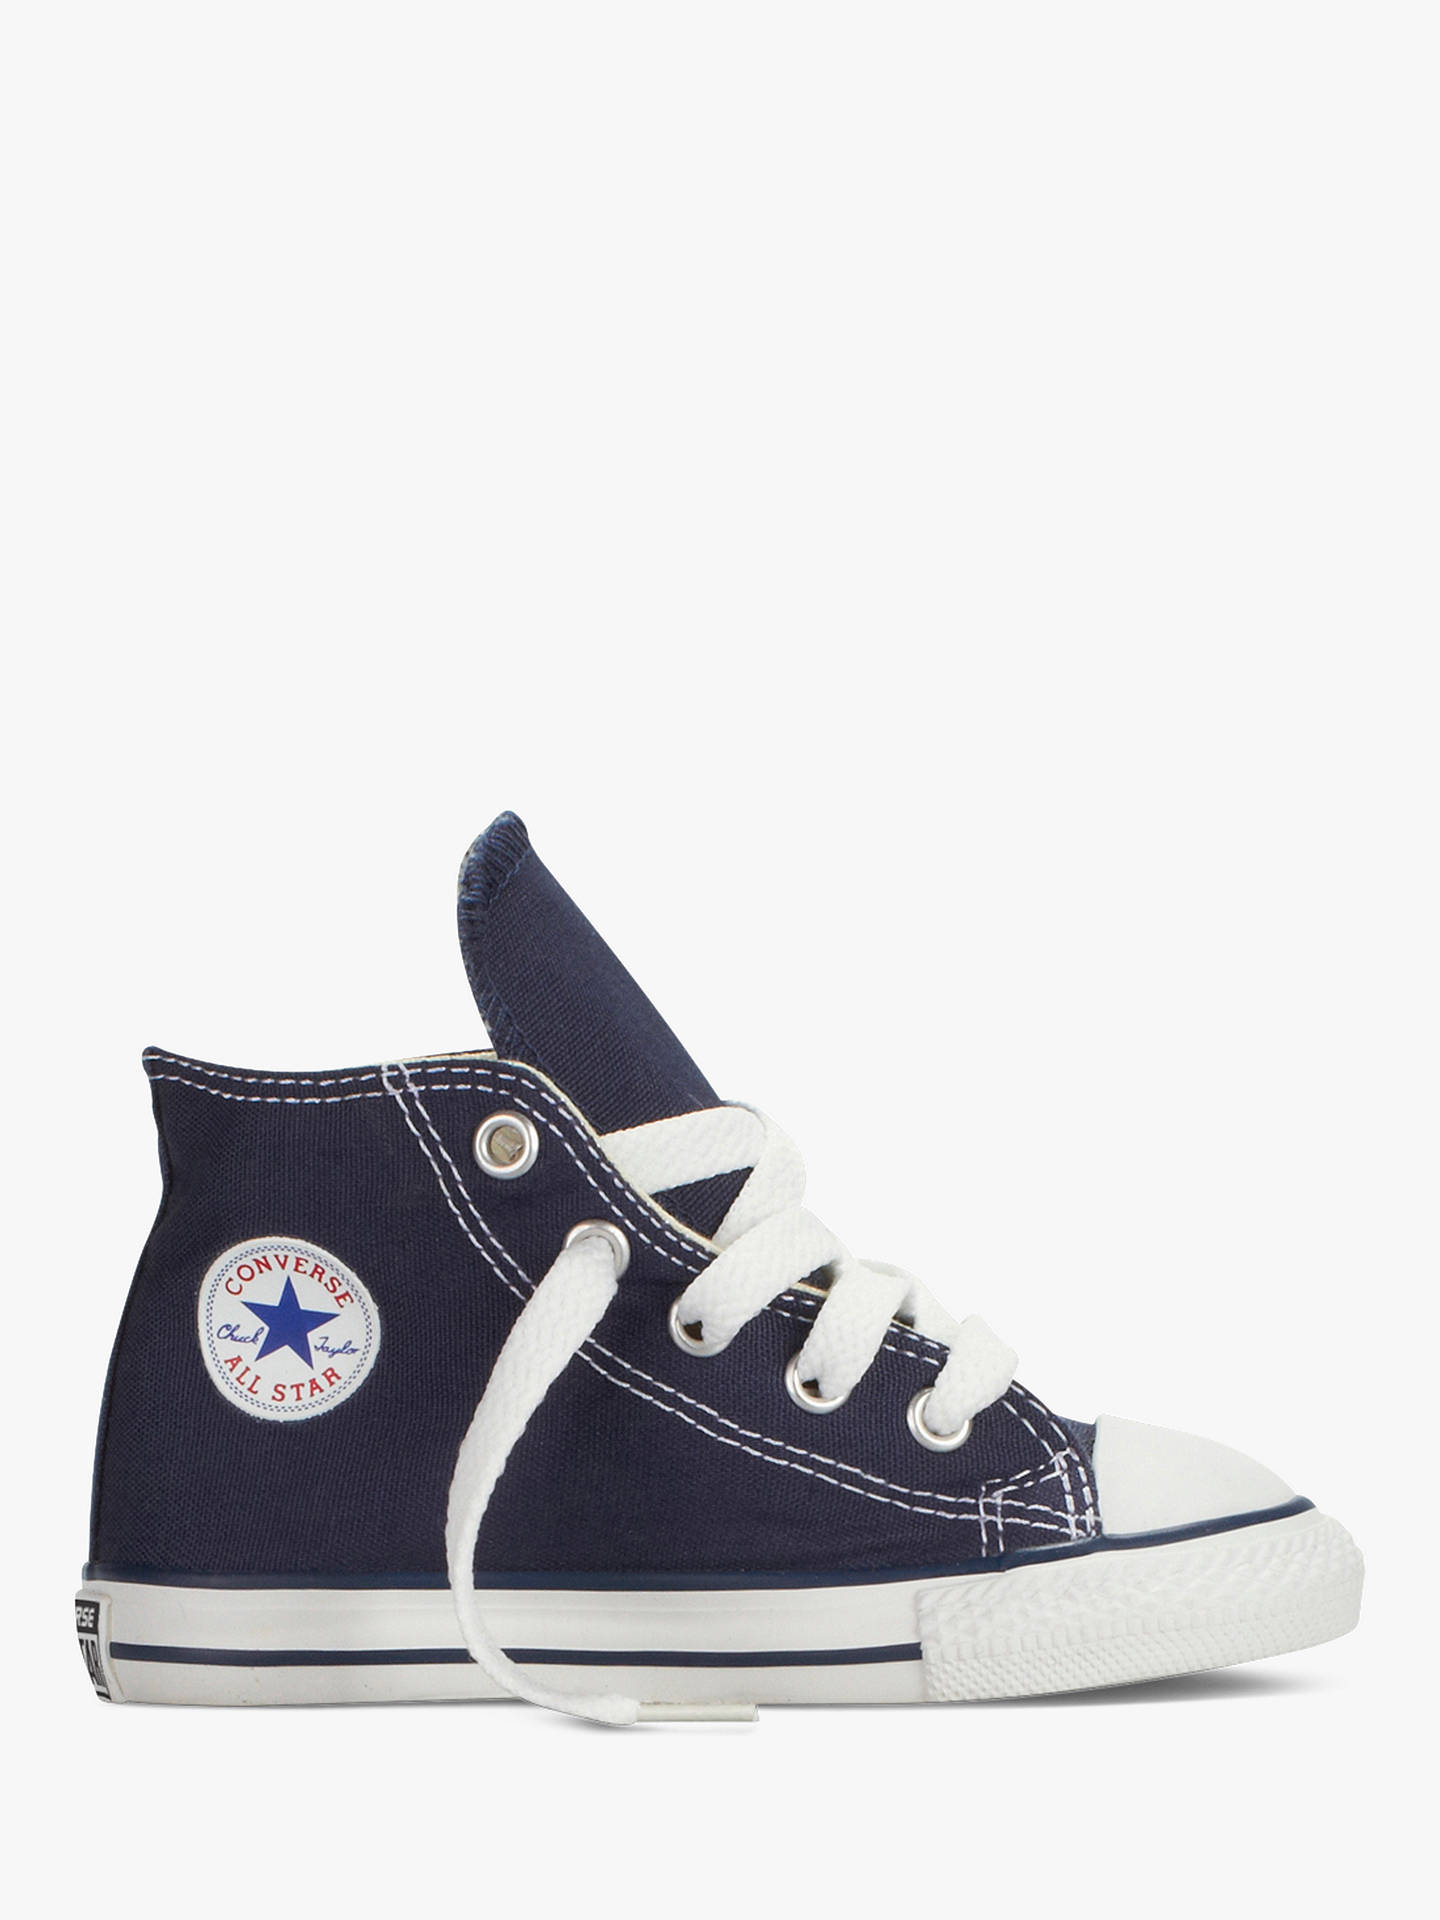 a77388f8378c Converse Children s Chuck Taylor All Star Core Hi-Top Trainers at ...